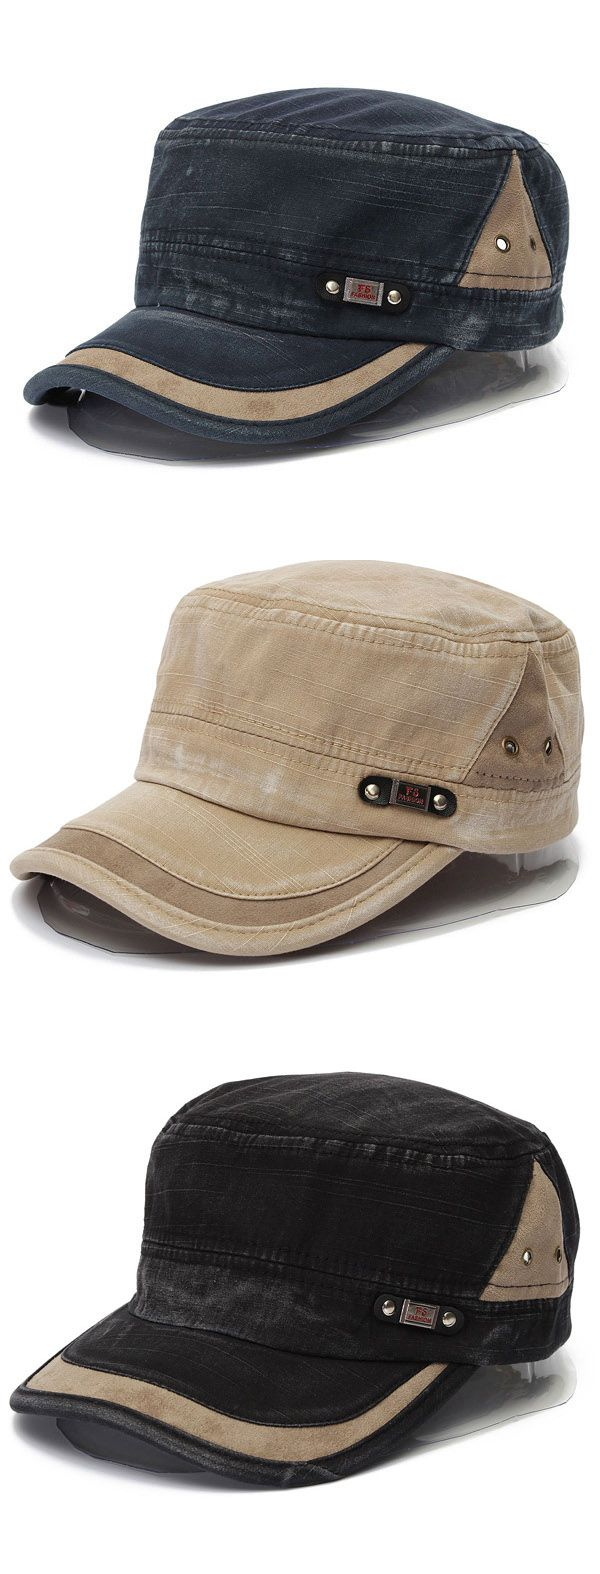 US$8.99 + Free shipping. Cotton blend cap, military cap, washed baseball cap, vintage army plain flat cap, caps mens. Color: black, blue, green, light brown, beige.